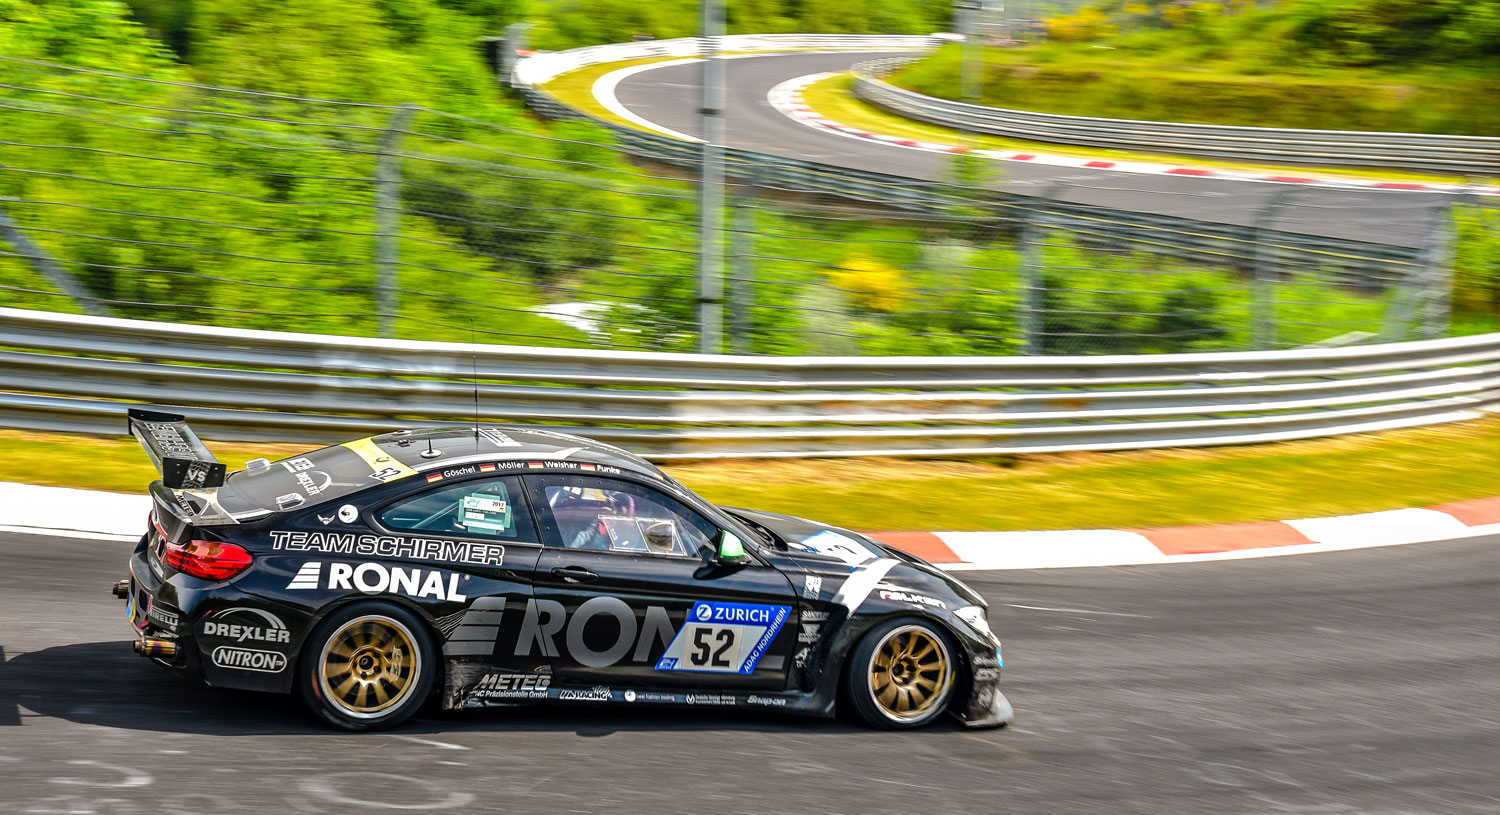 The BMW M4 Schirmer GT Race Car can only be used on Apex Nürburg taxi laps days.